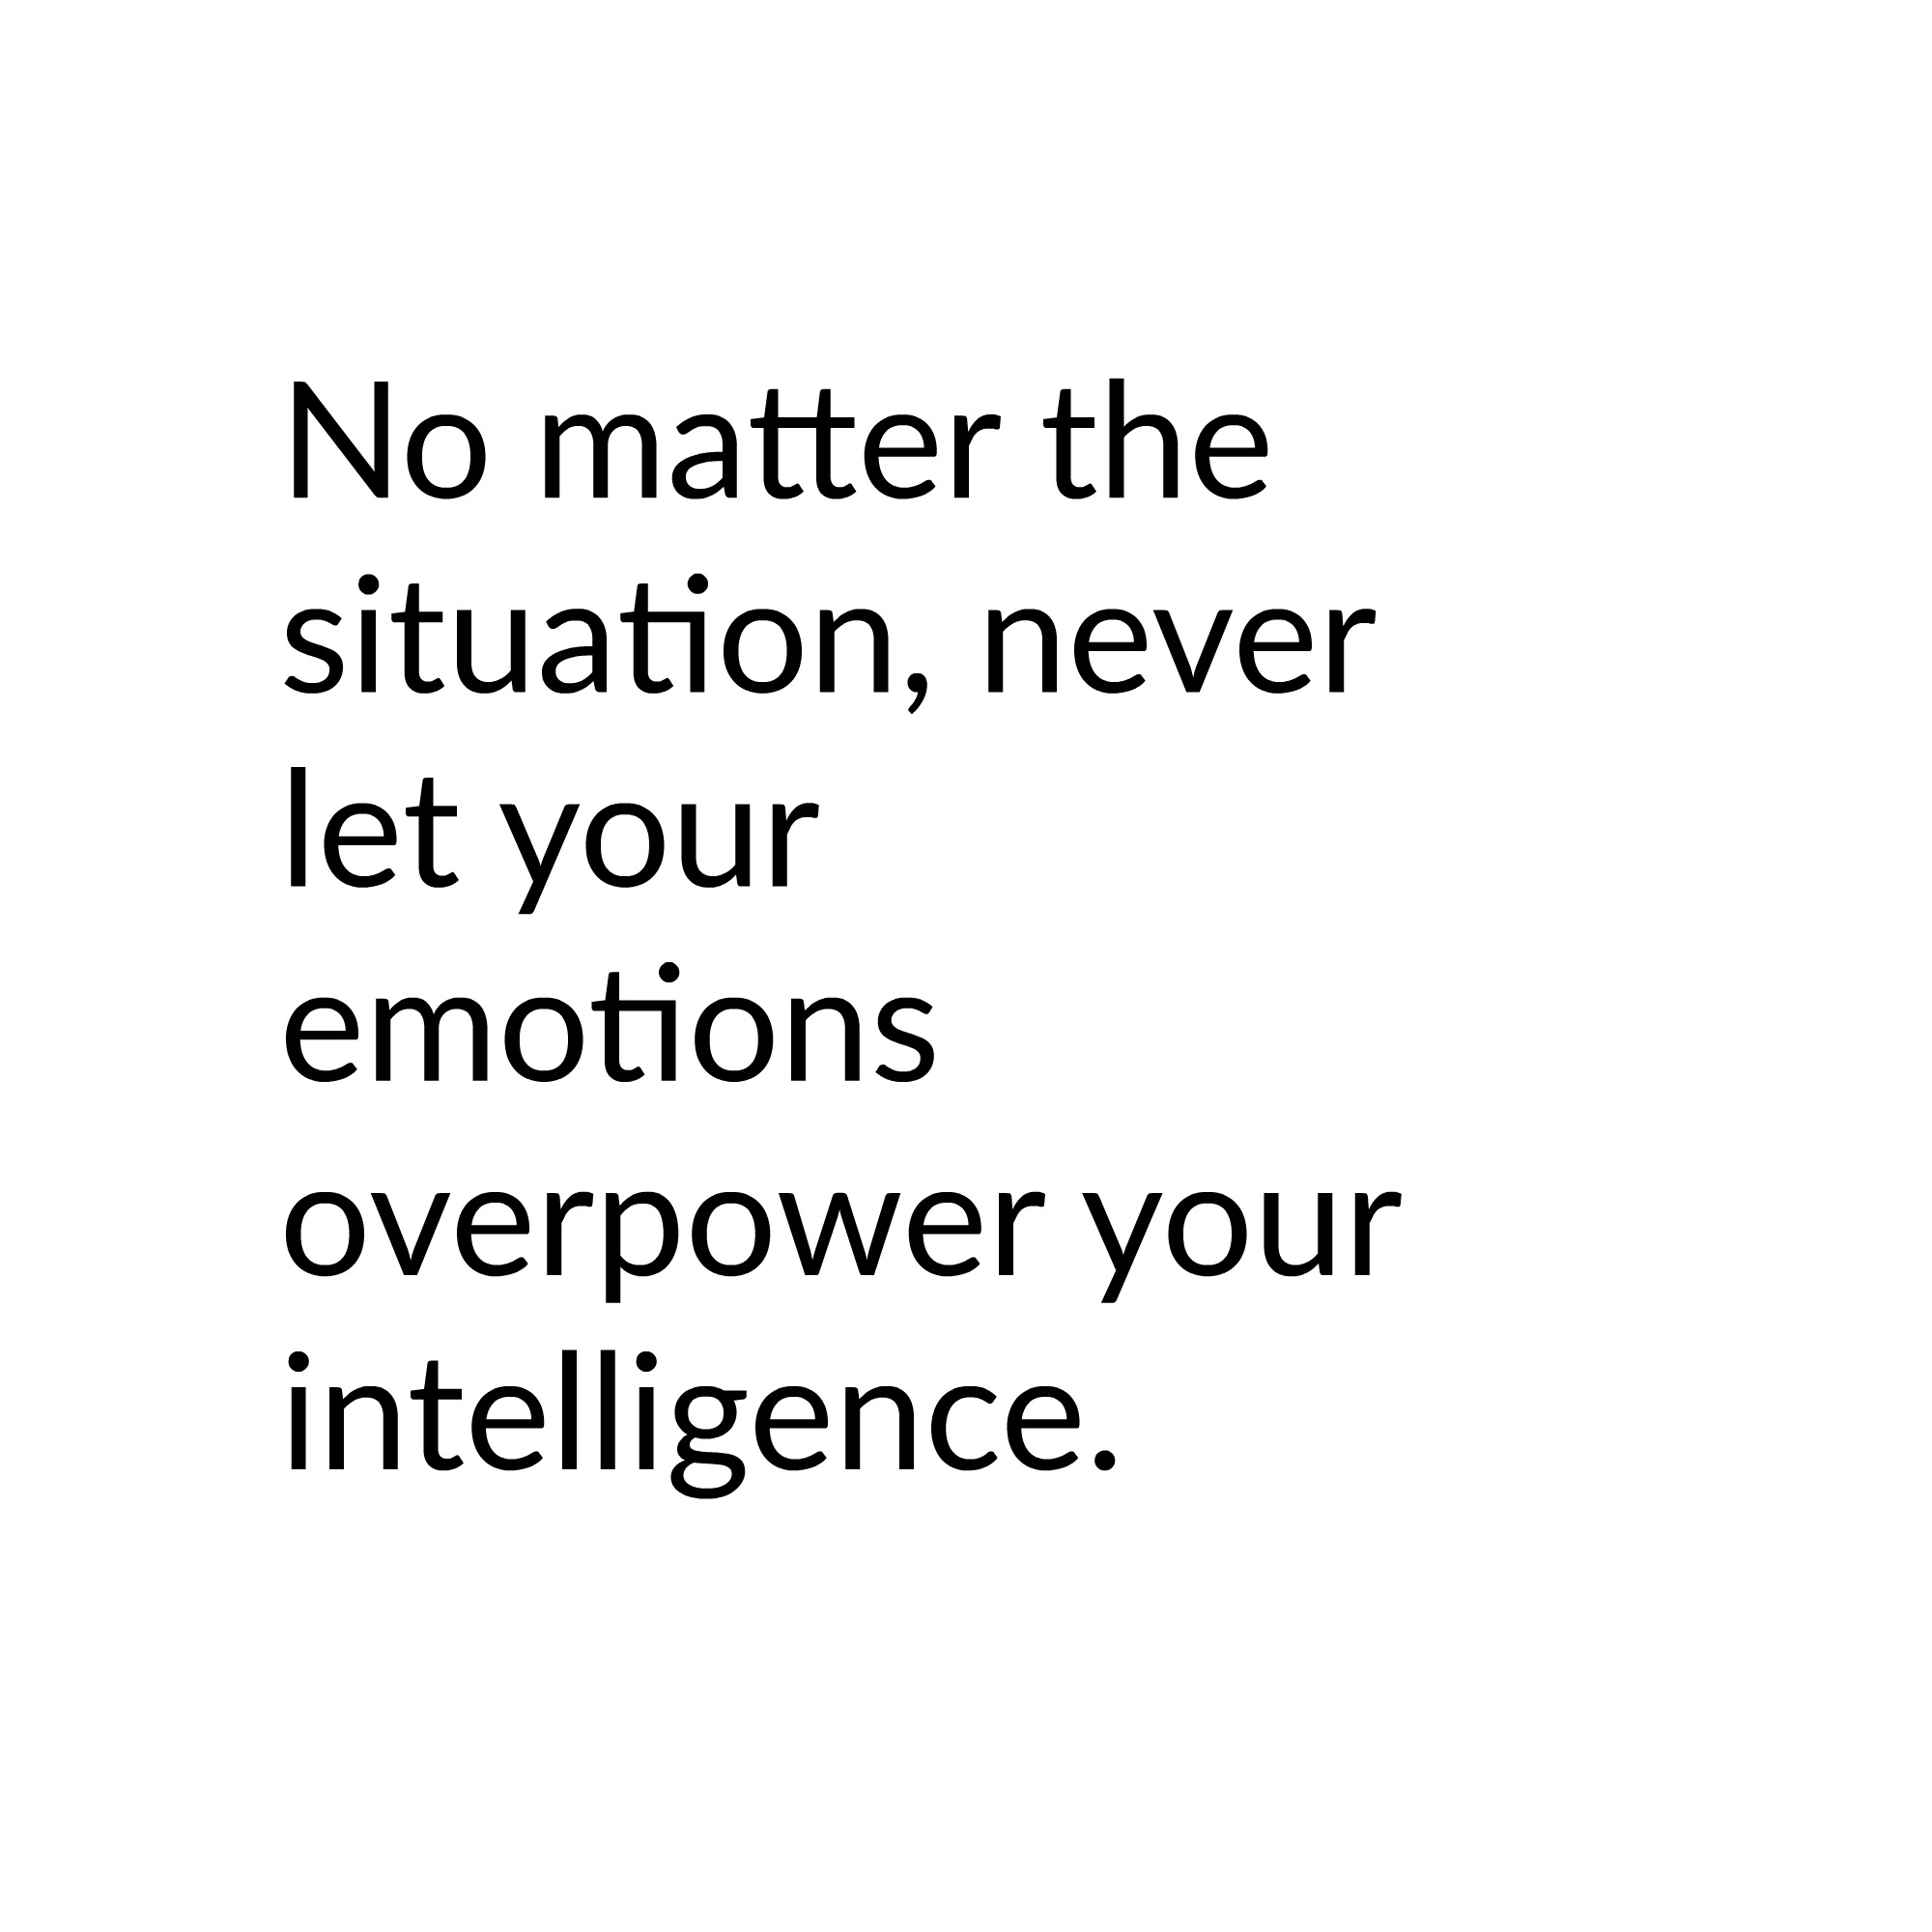 You're in control. Read more on Ways to Increase Emotional Intelligence on www.roliedema.com